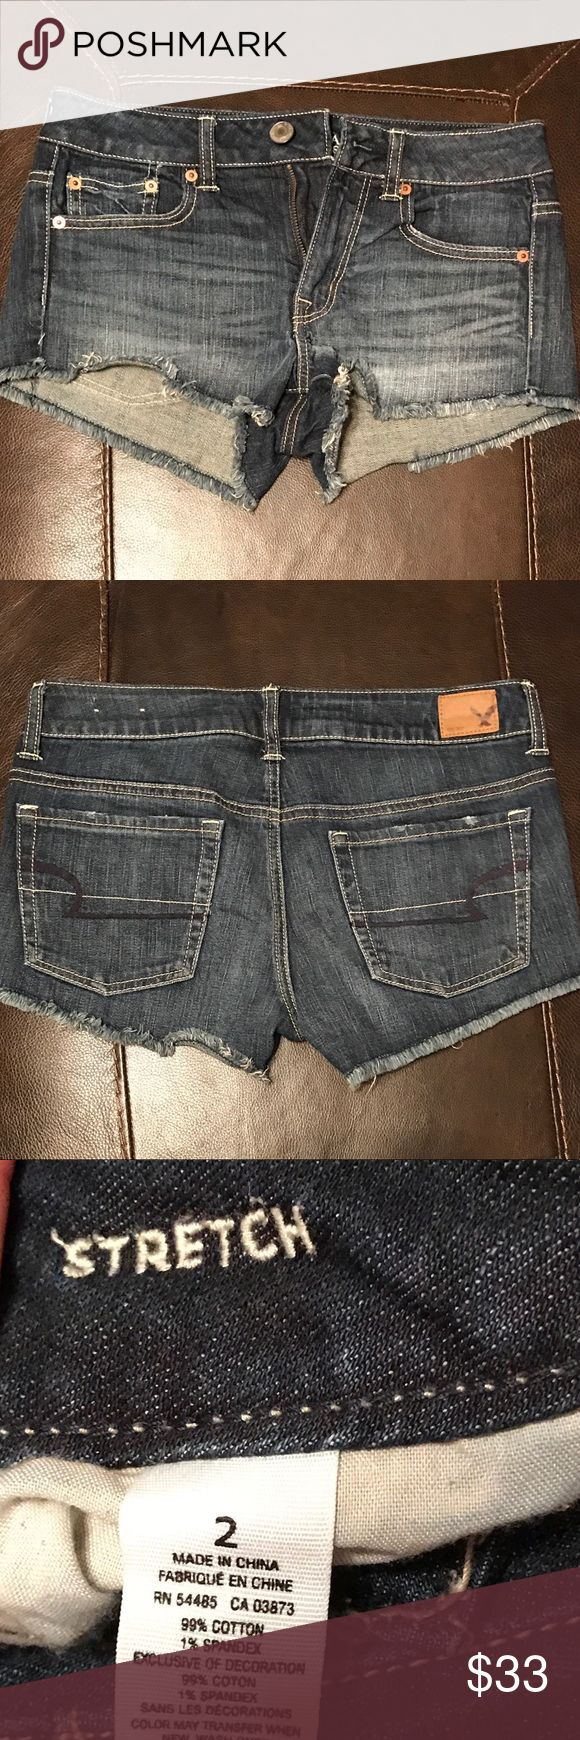 NWOT American Eagle Outfitters Stretch Shorts 2 NWOT American Eagle Outfitters Stretch Shorts Size 2 - These have not been worn. You can still see the stitching in the waist band from where I took the tag off. These have a 2 inch inseam. American Eagle Outfitters Shorts Jean Shorts